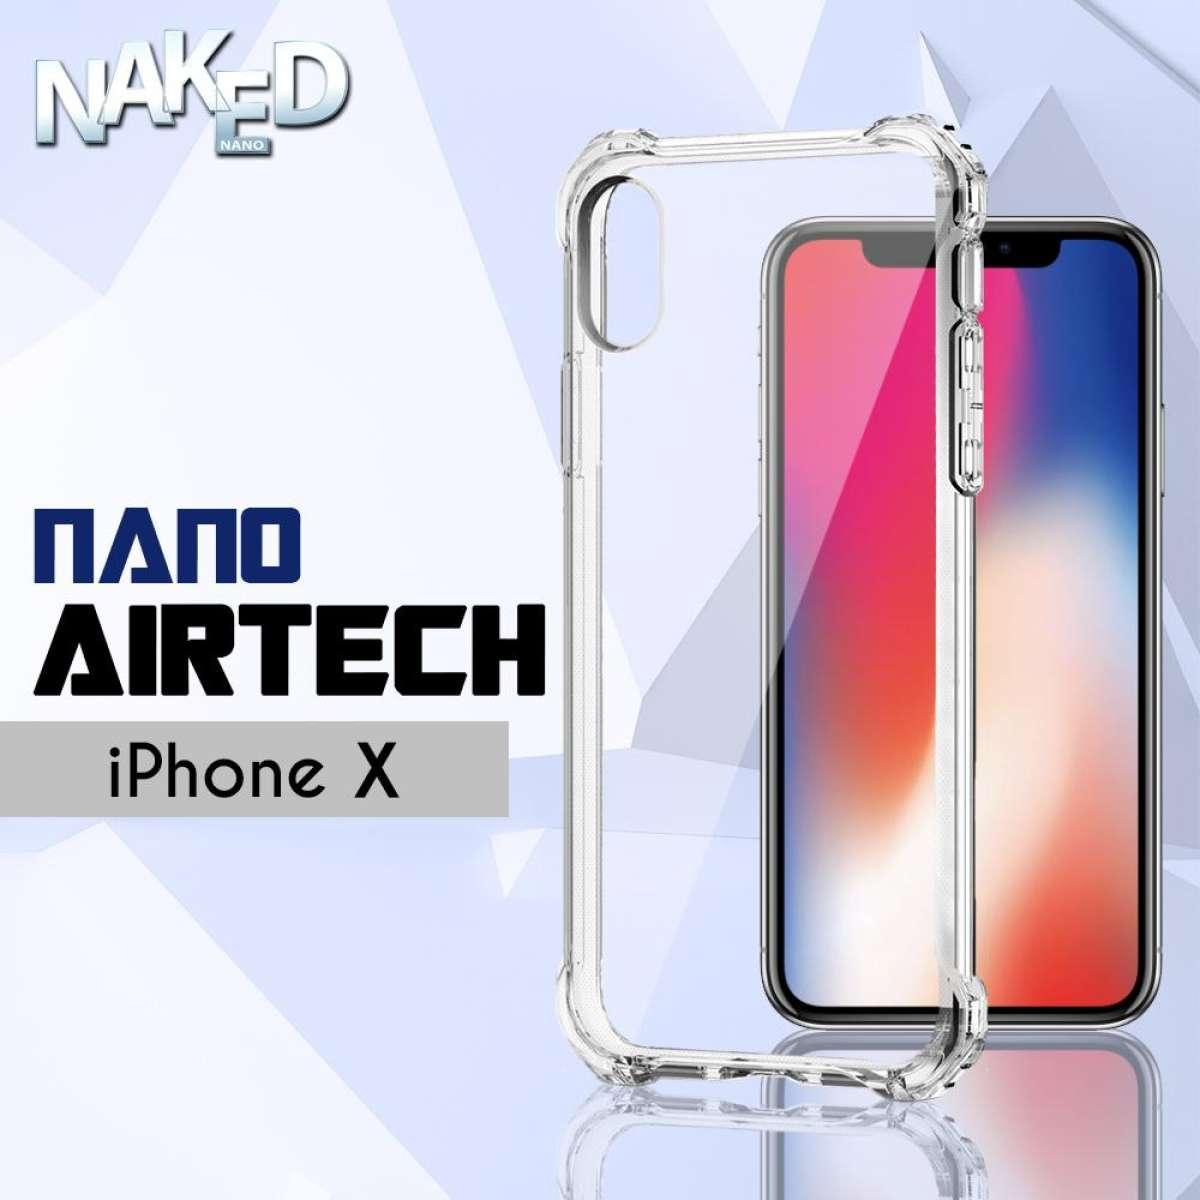 Nano AirTech Protective Case Apple iPhone X/ XS Shock Absorbing TPU Casing